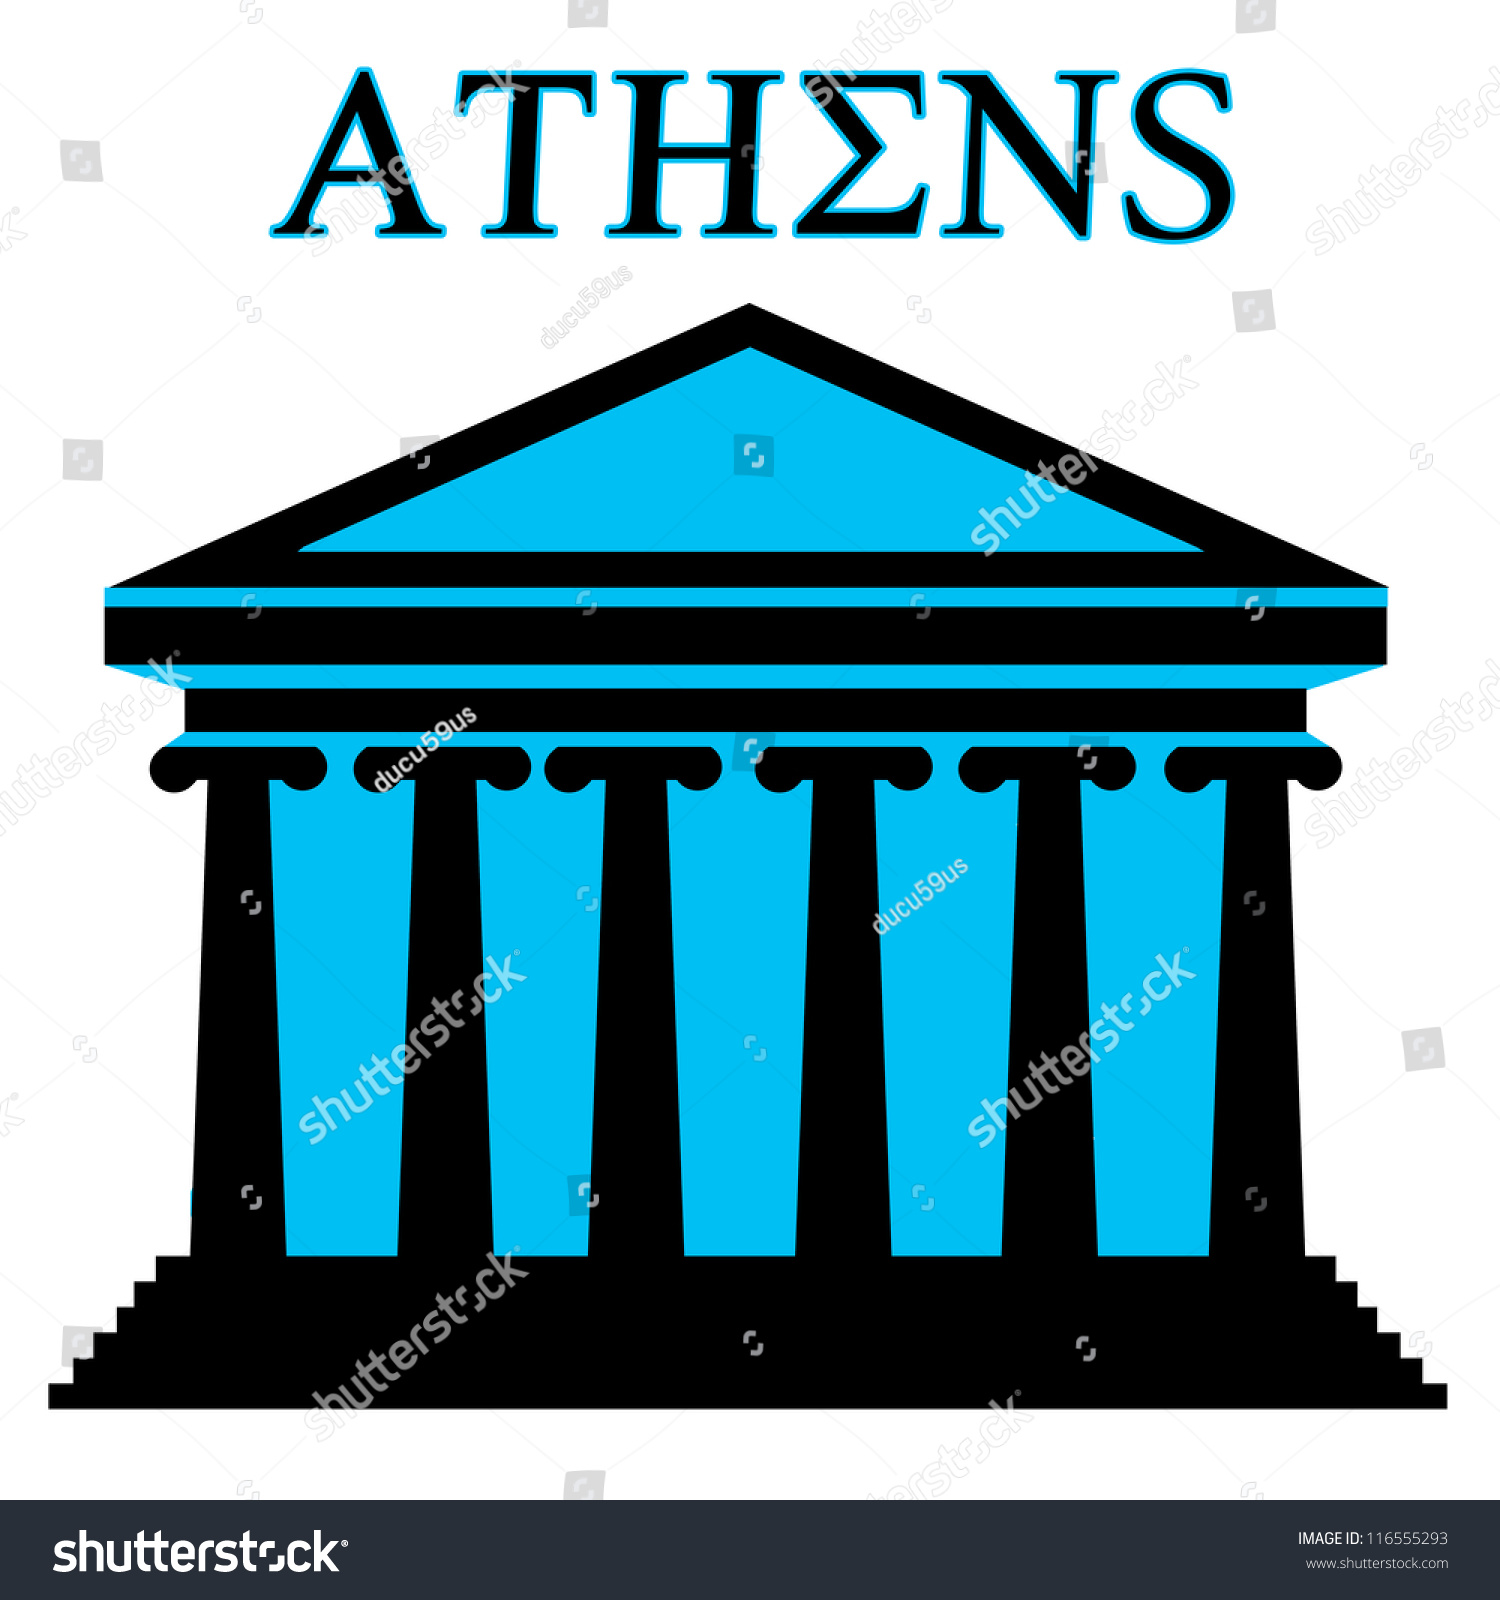 Greece symbols and signs ancient greece symbols and signs biocorpaavc